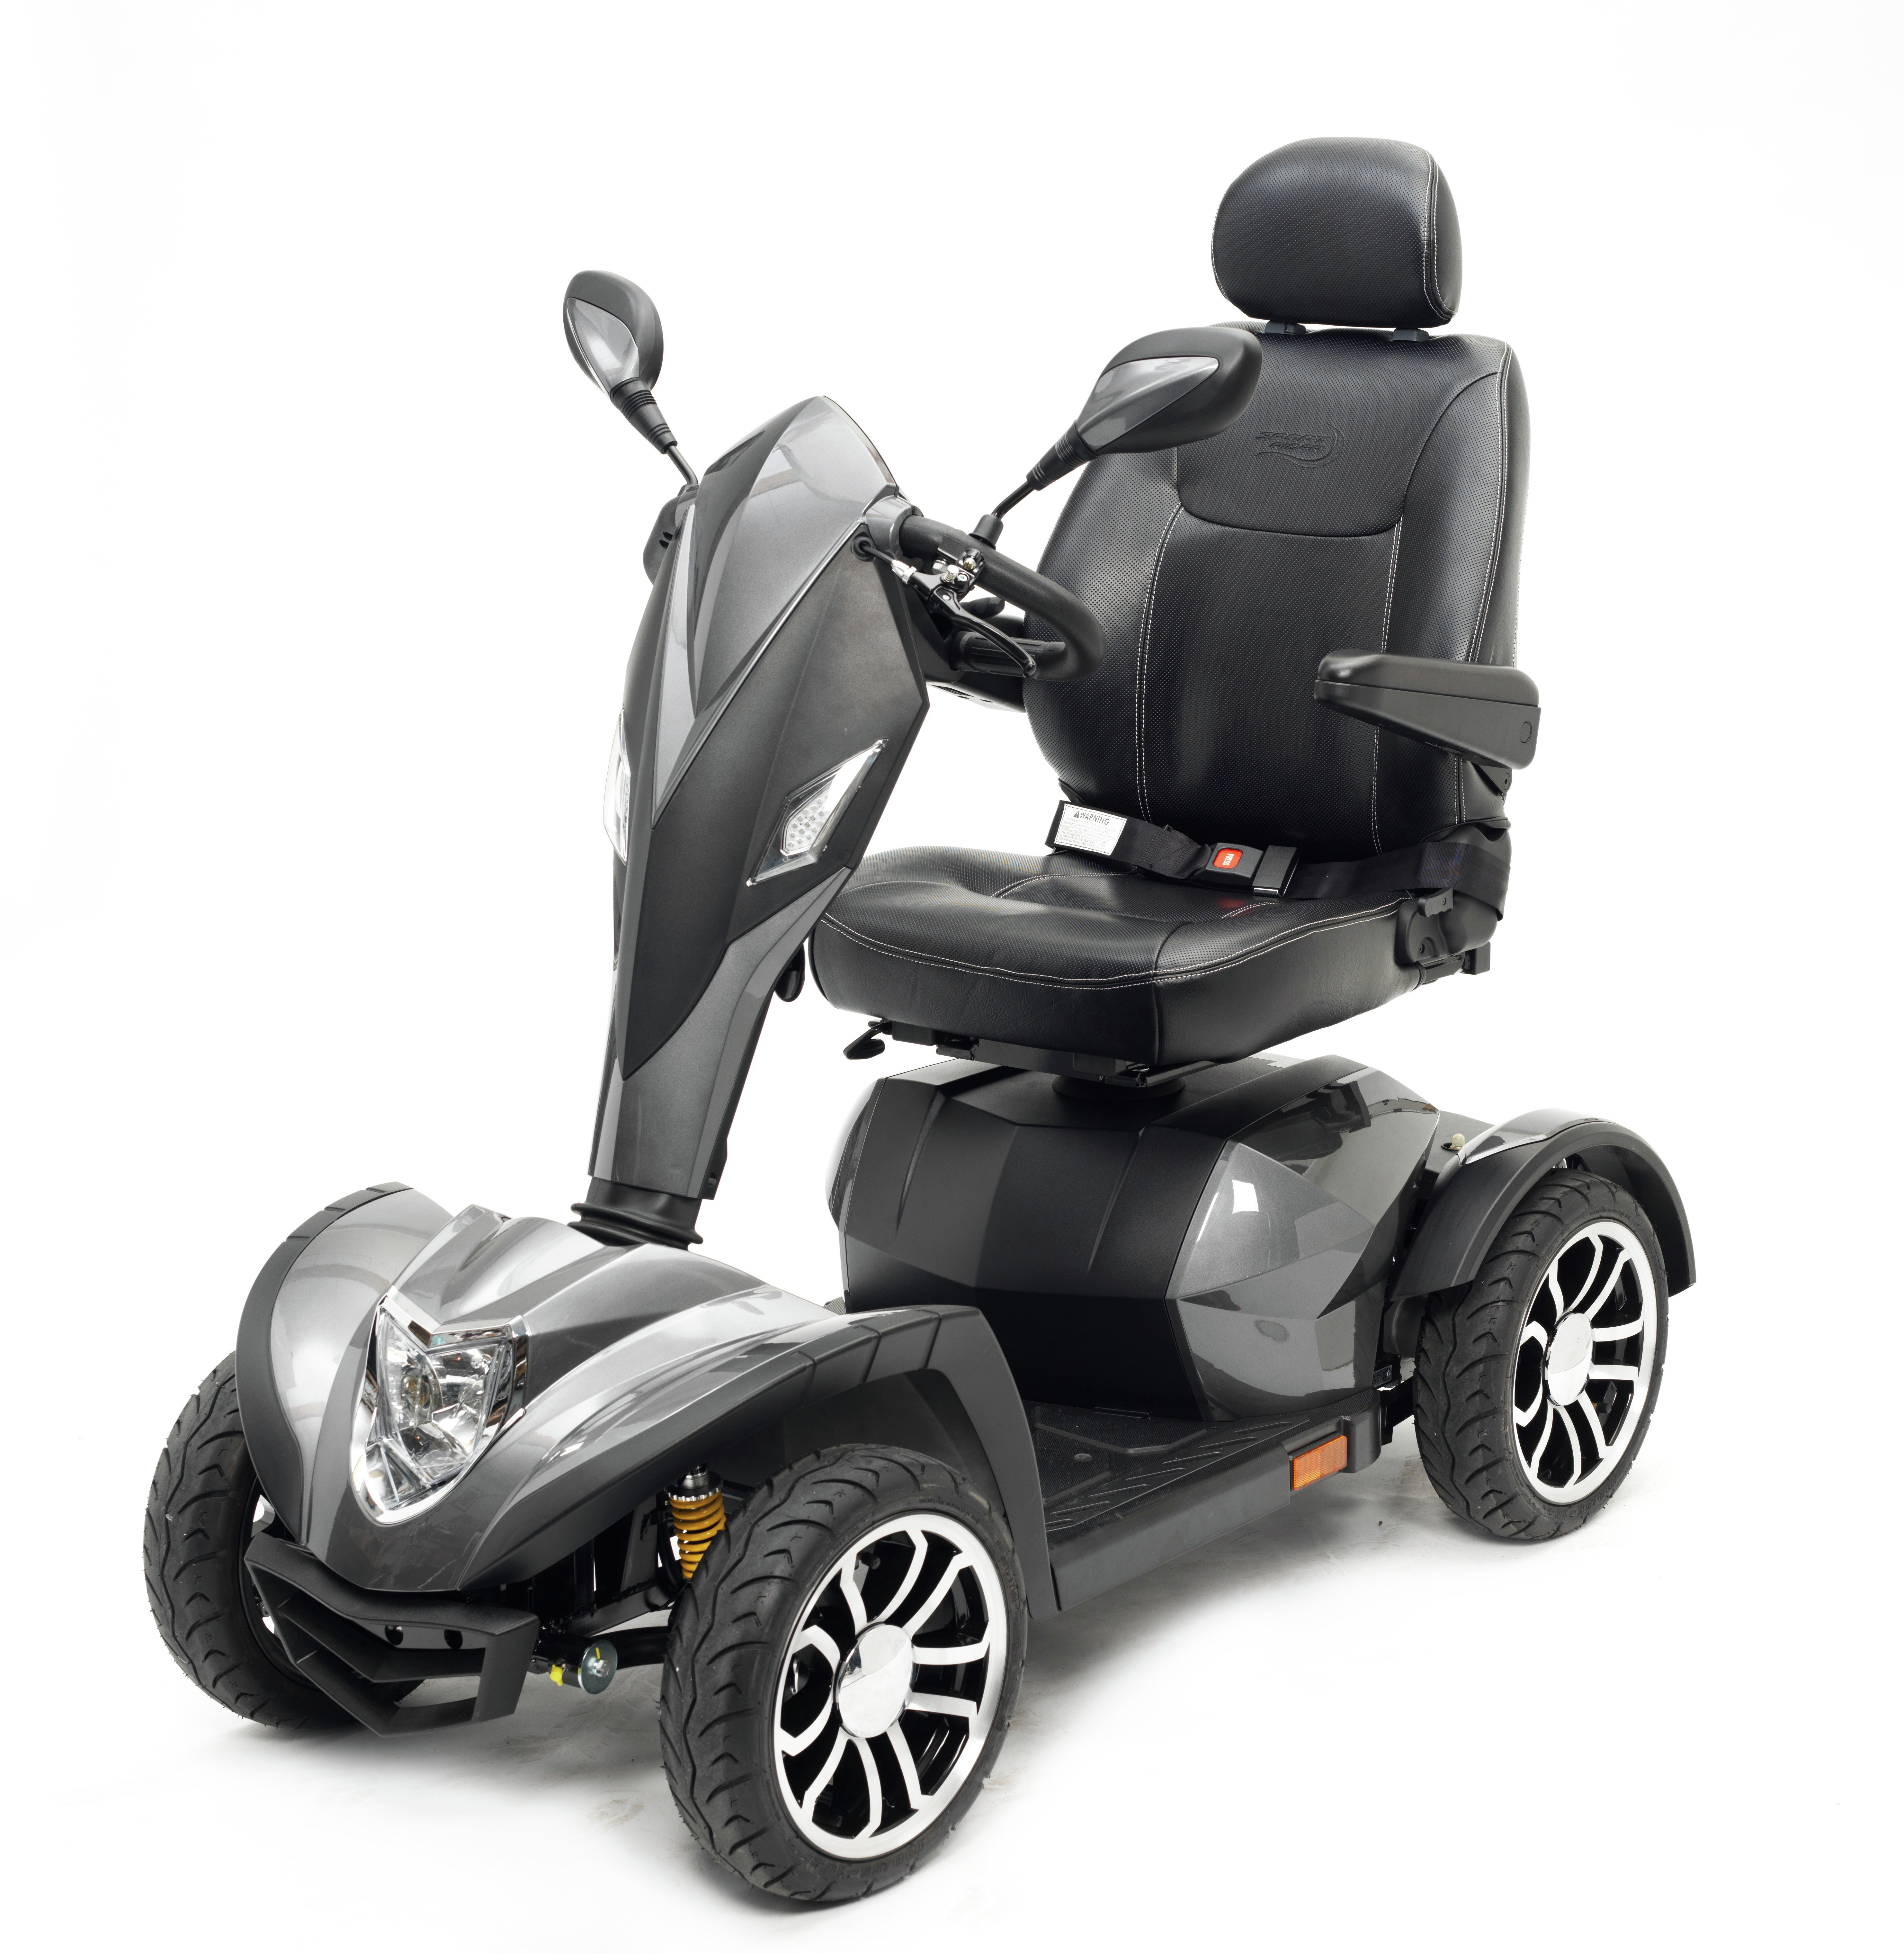 Drive DeVilbiss Healthcare Cobra Mobility Scooter Class 3 - Silver.